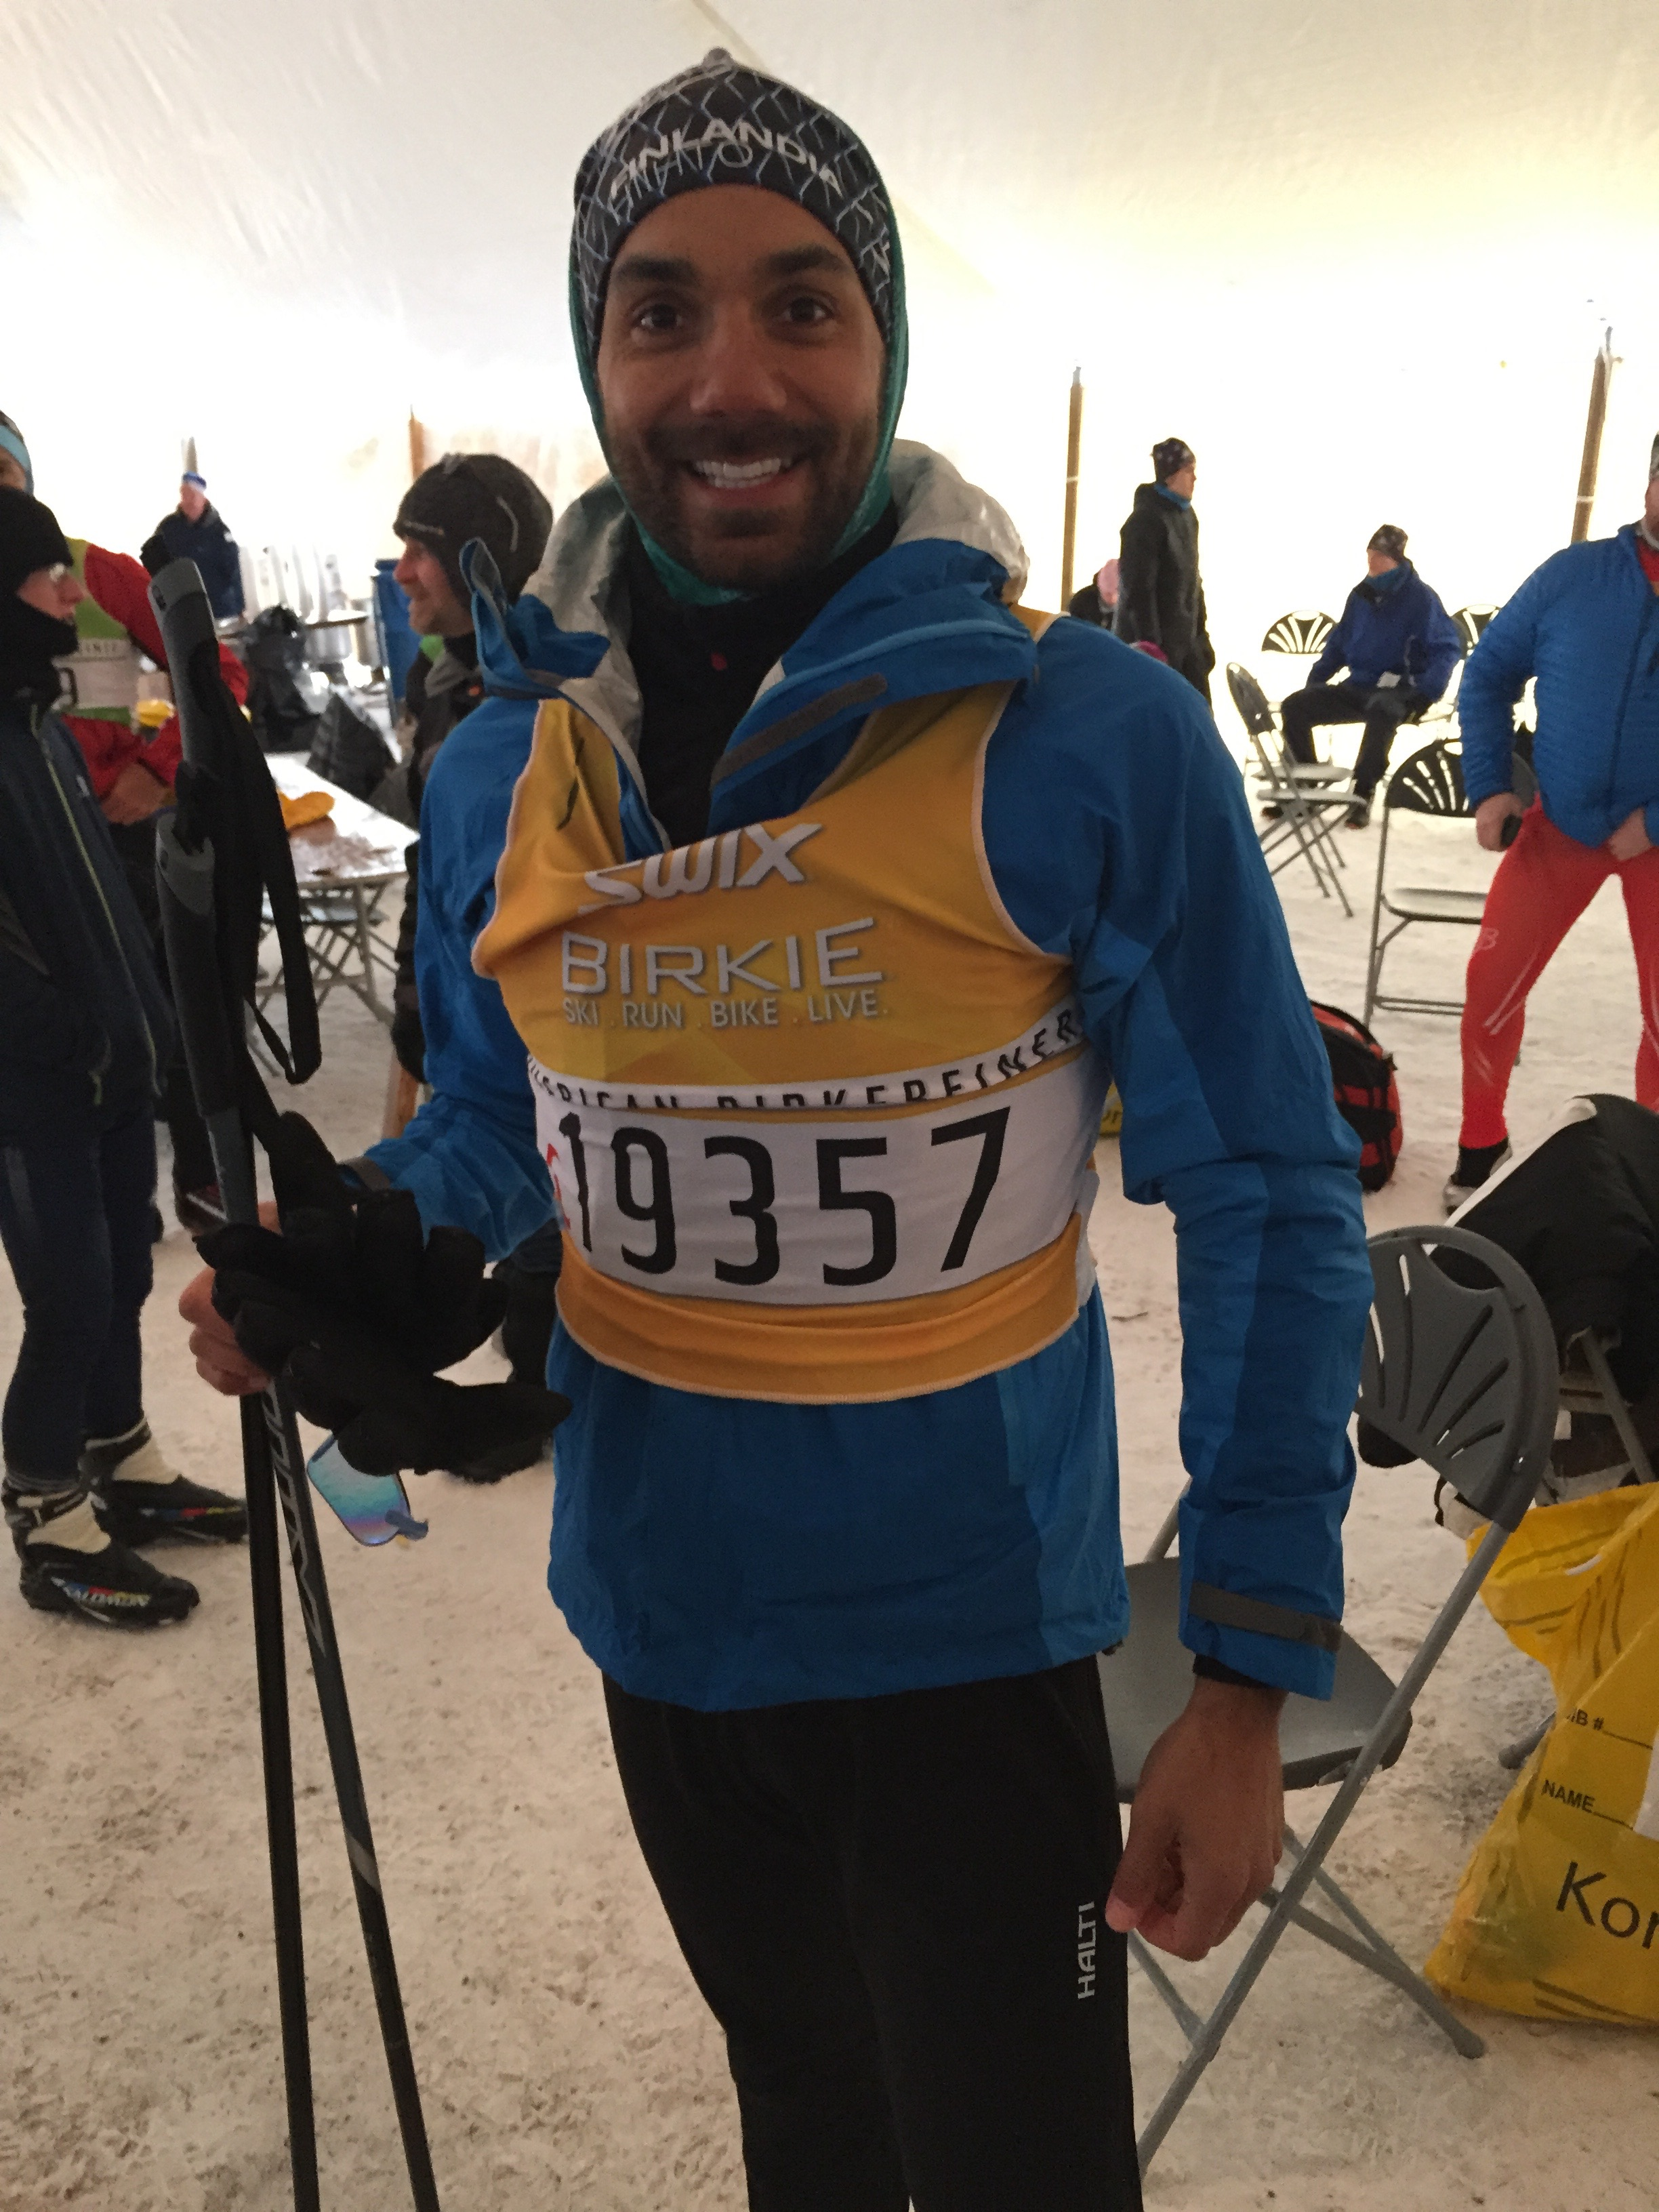 Richard Bray Warming up before the American Birkie